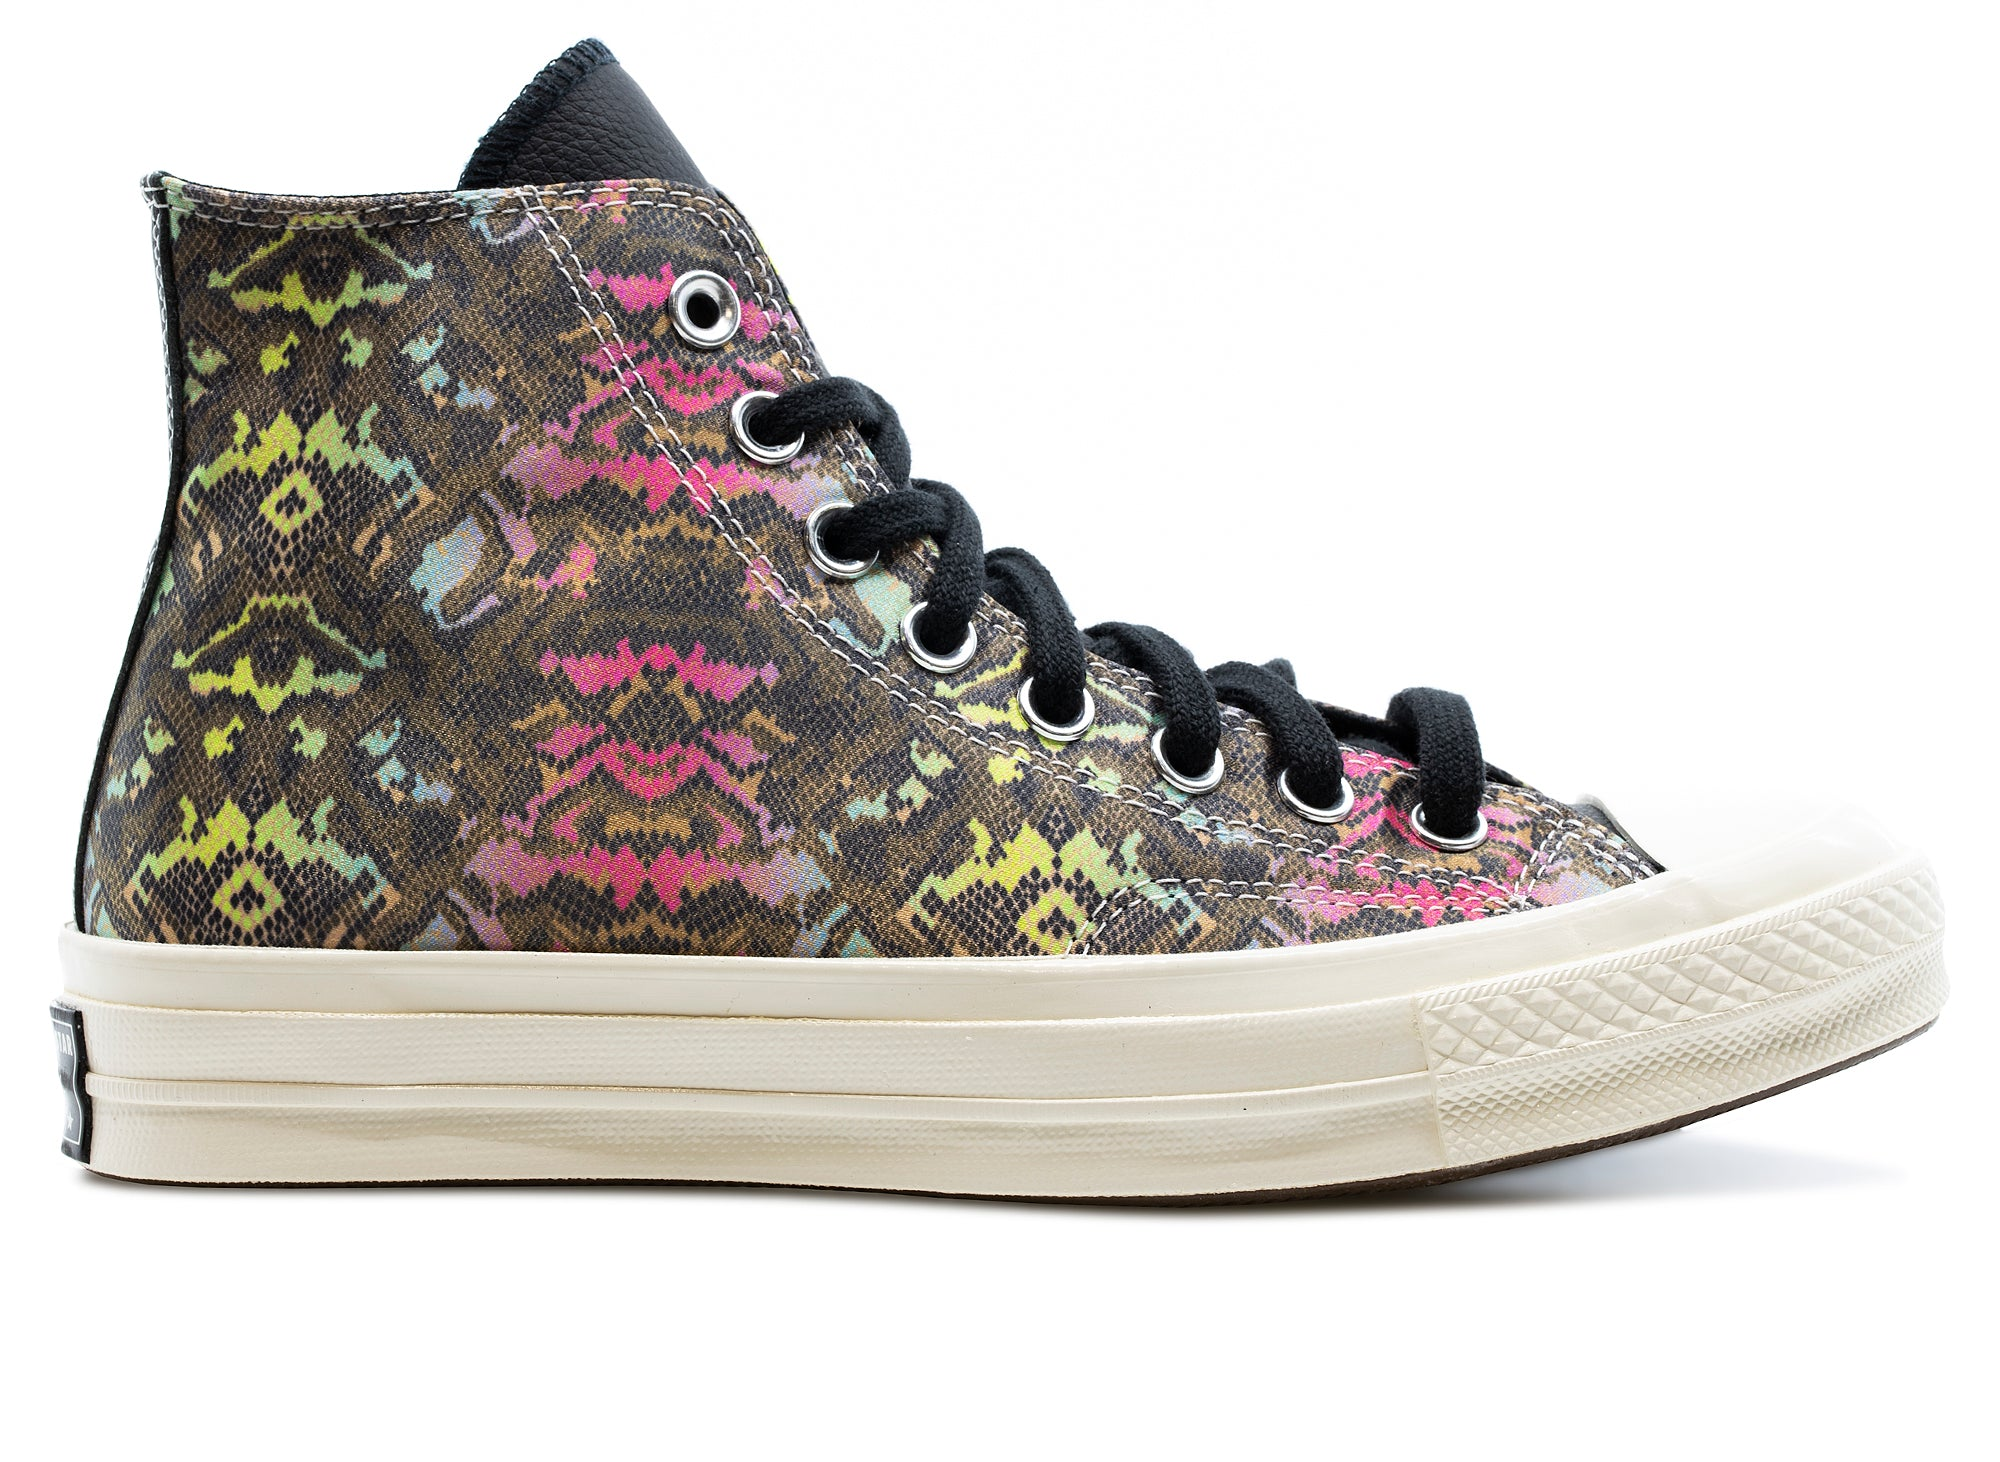 Women's Converse Chuck 70 Hi 'Digital Daze'